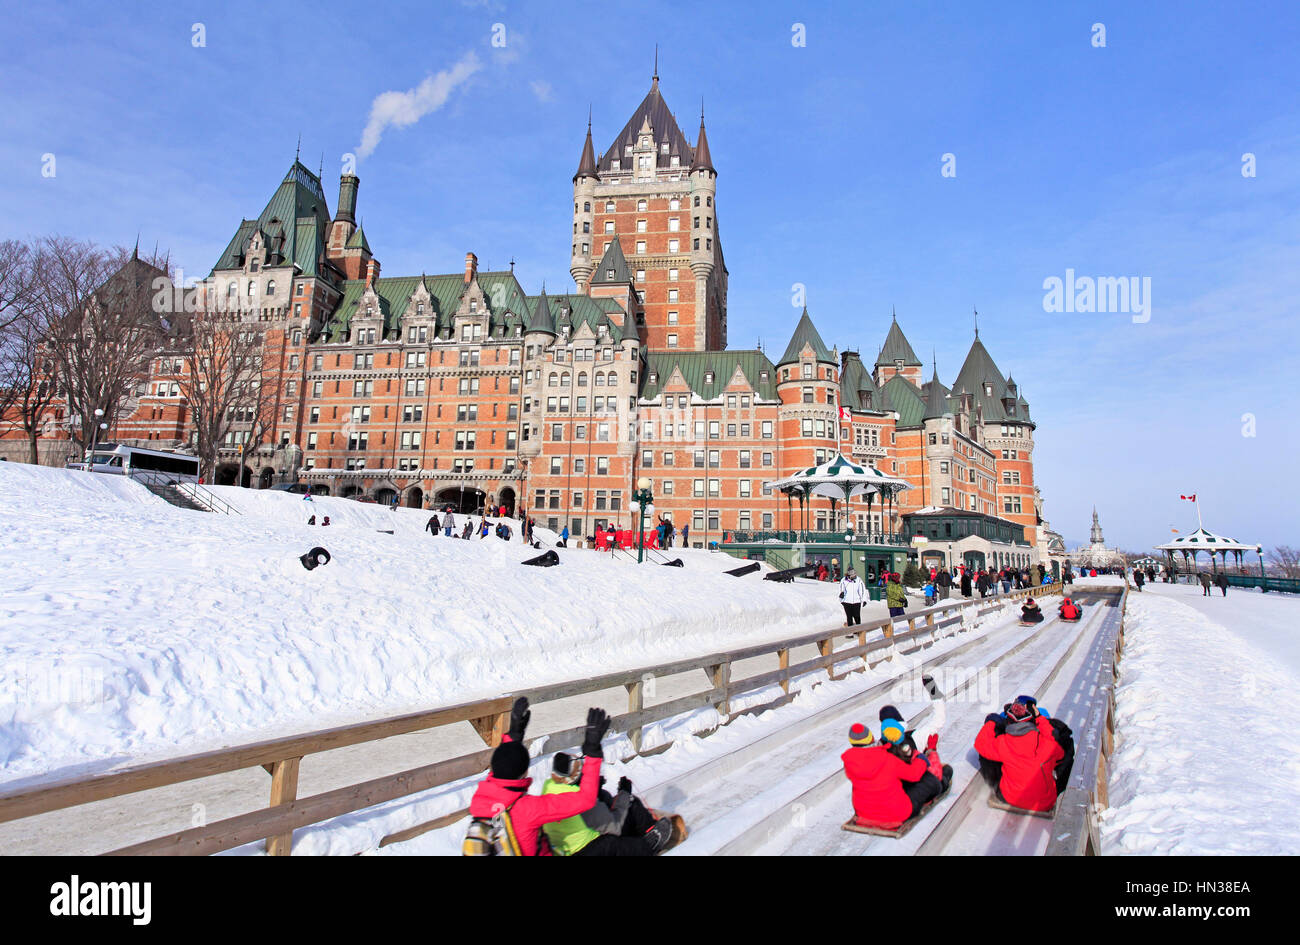 File name:Quebec City in winter, traditional slide descent, Canada - Stock Image